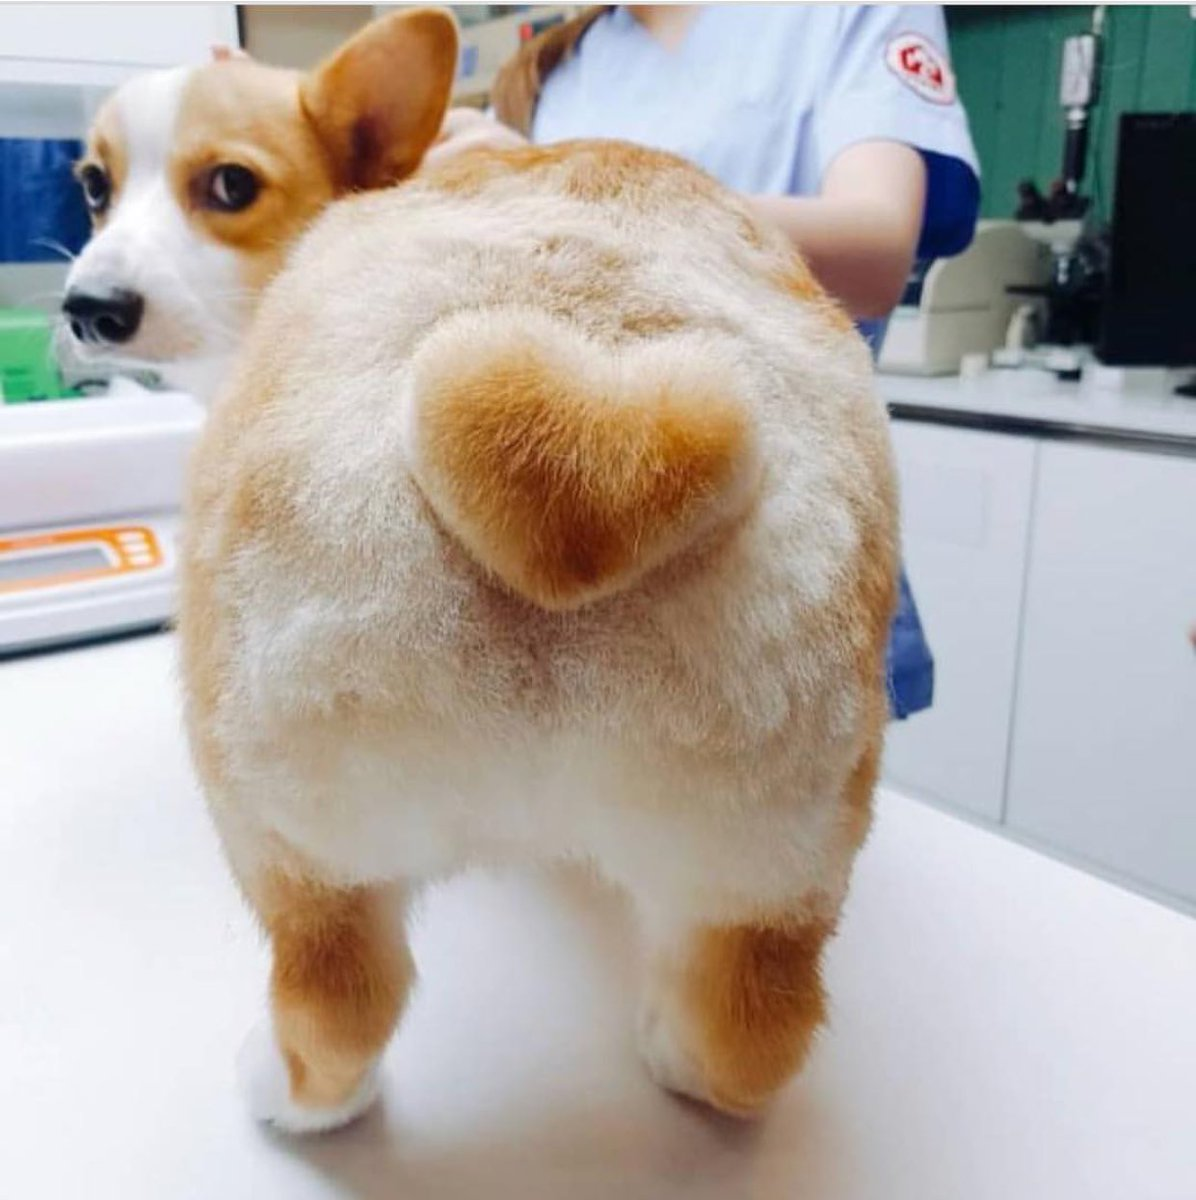 Robust Puppybf On Butts Drive Me Nuts Corgi Heart Butt Corgi Heart Butt Meme bark post Corgi Heart Butt